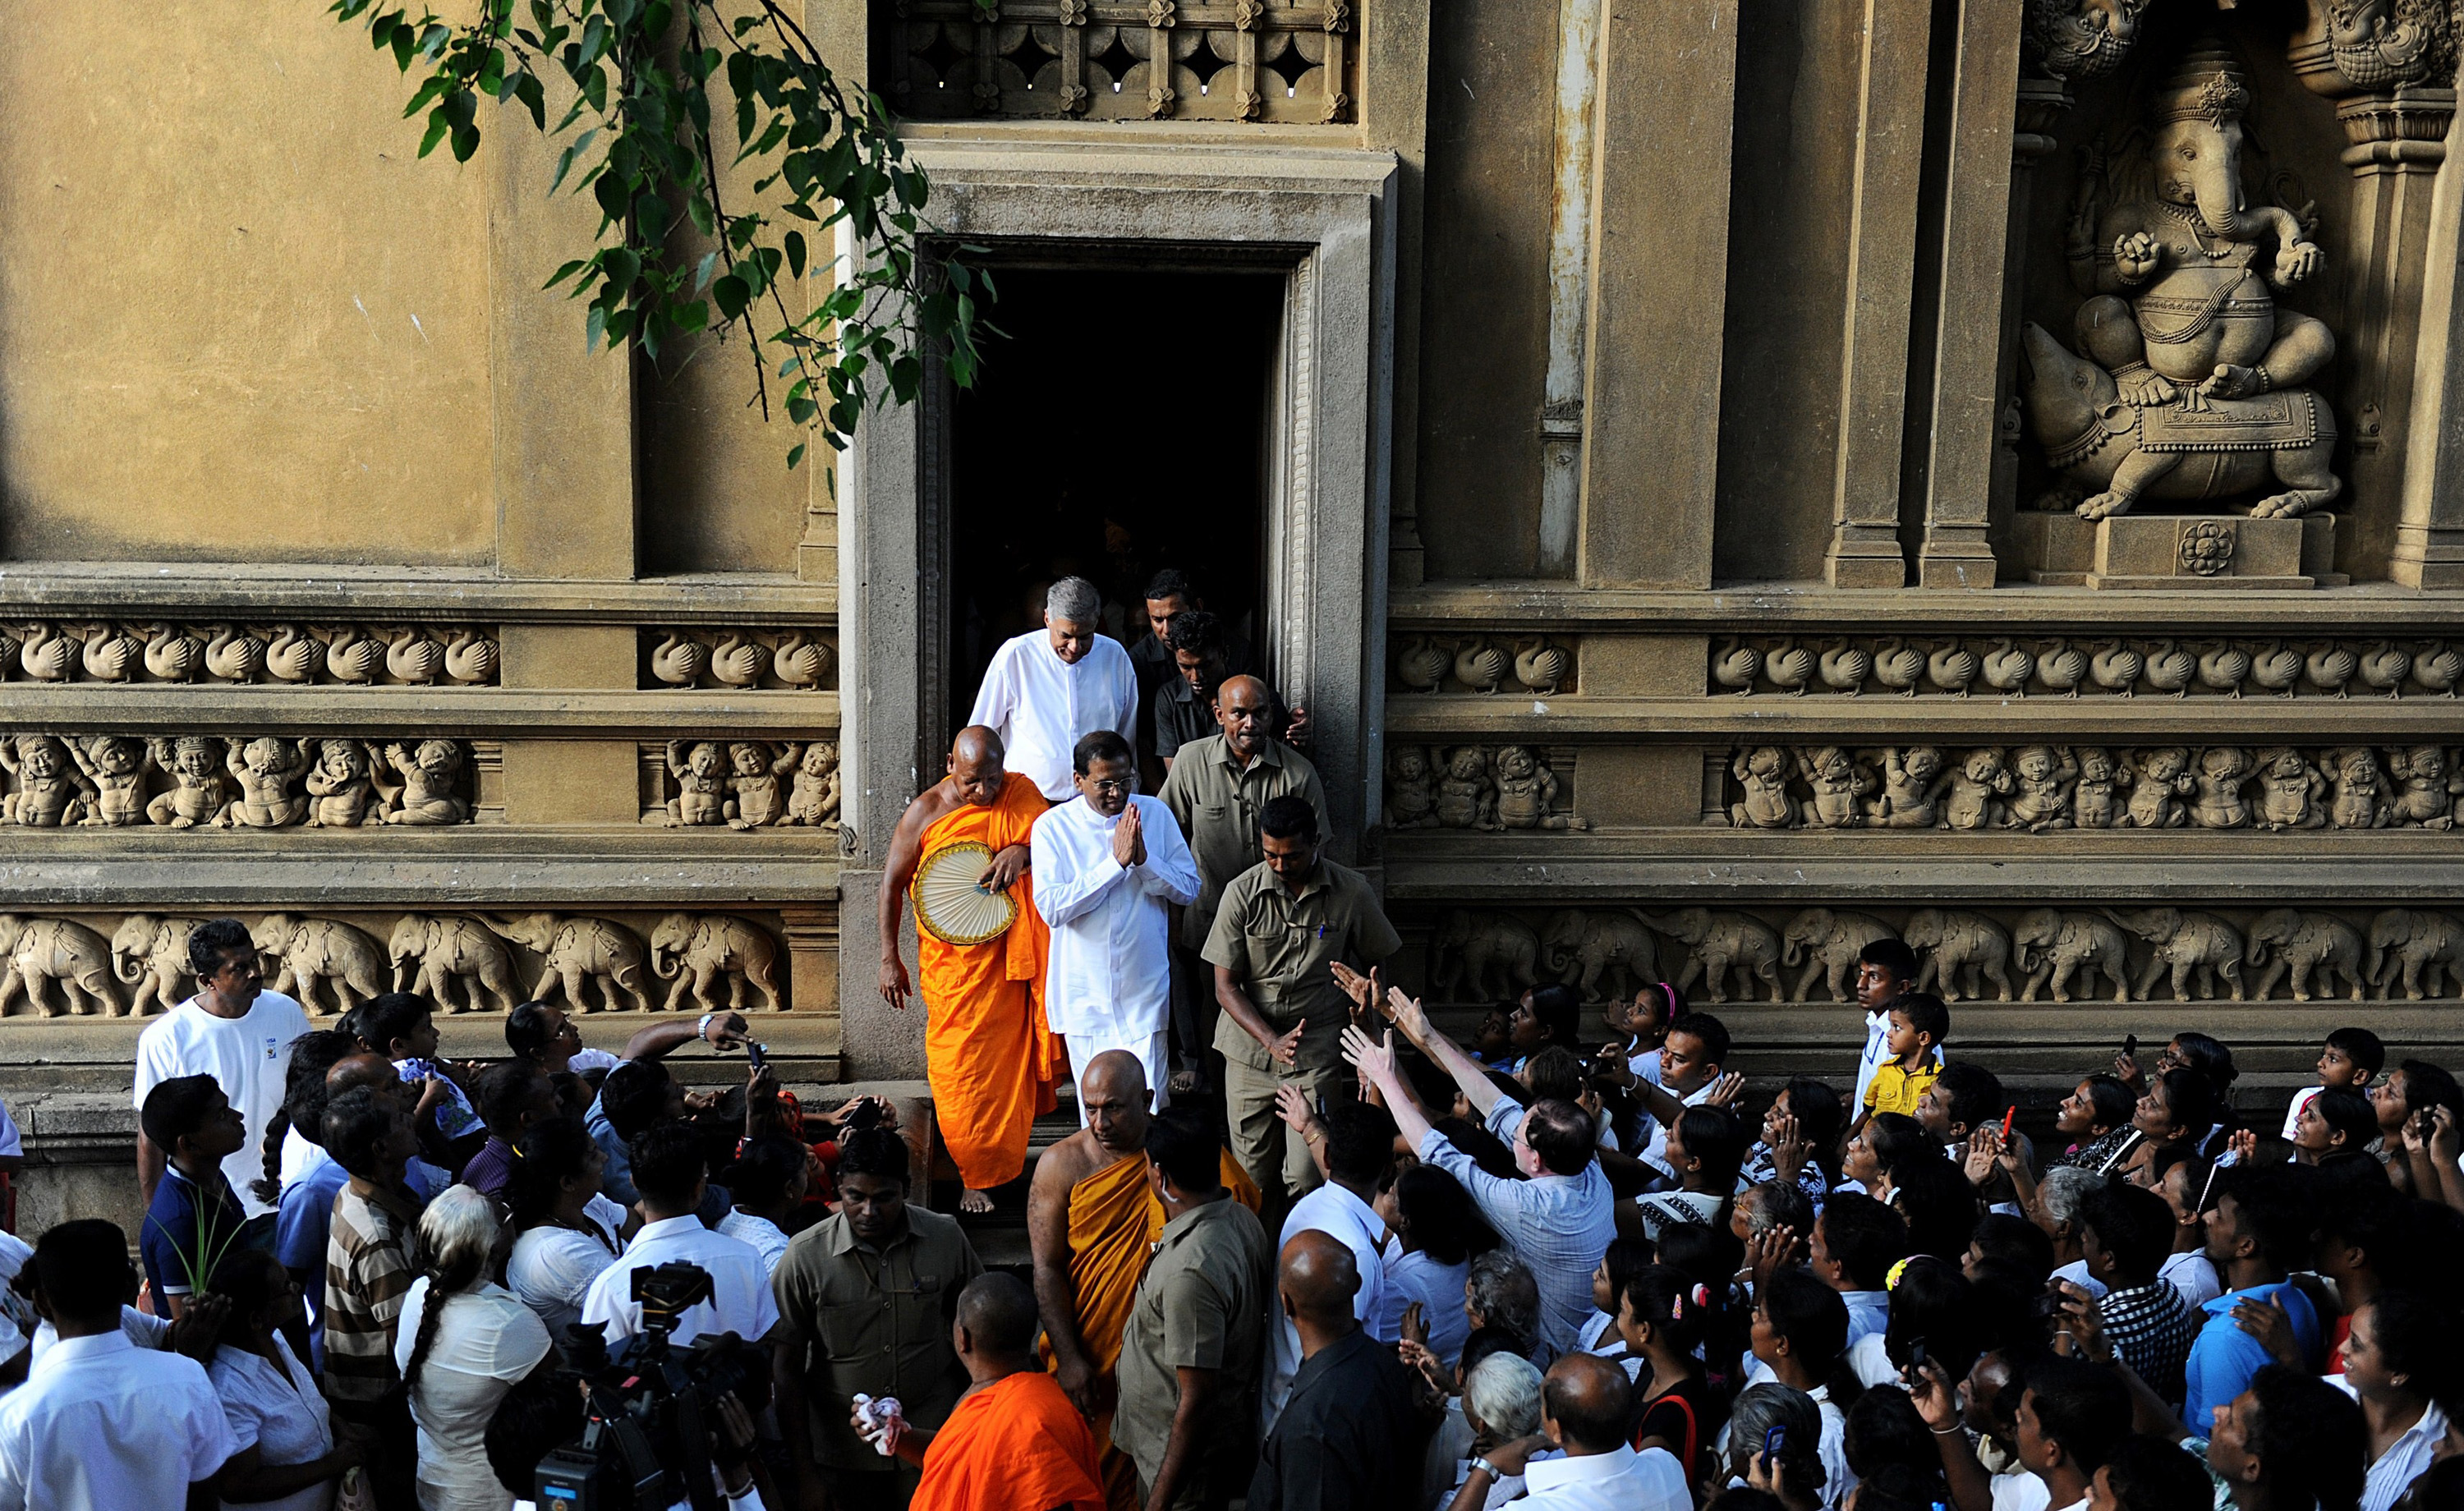 Sirisena, in white with hands together, greets his supporters after praying at a Buddhist temple outside Colombo.